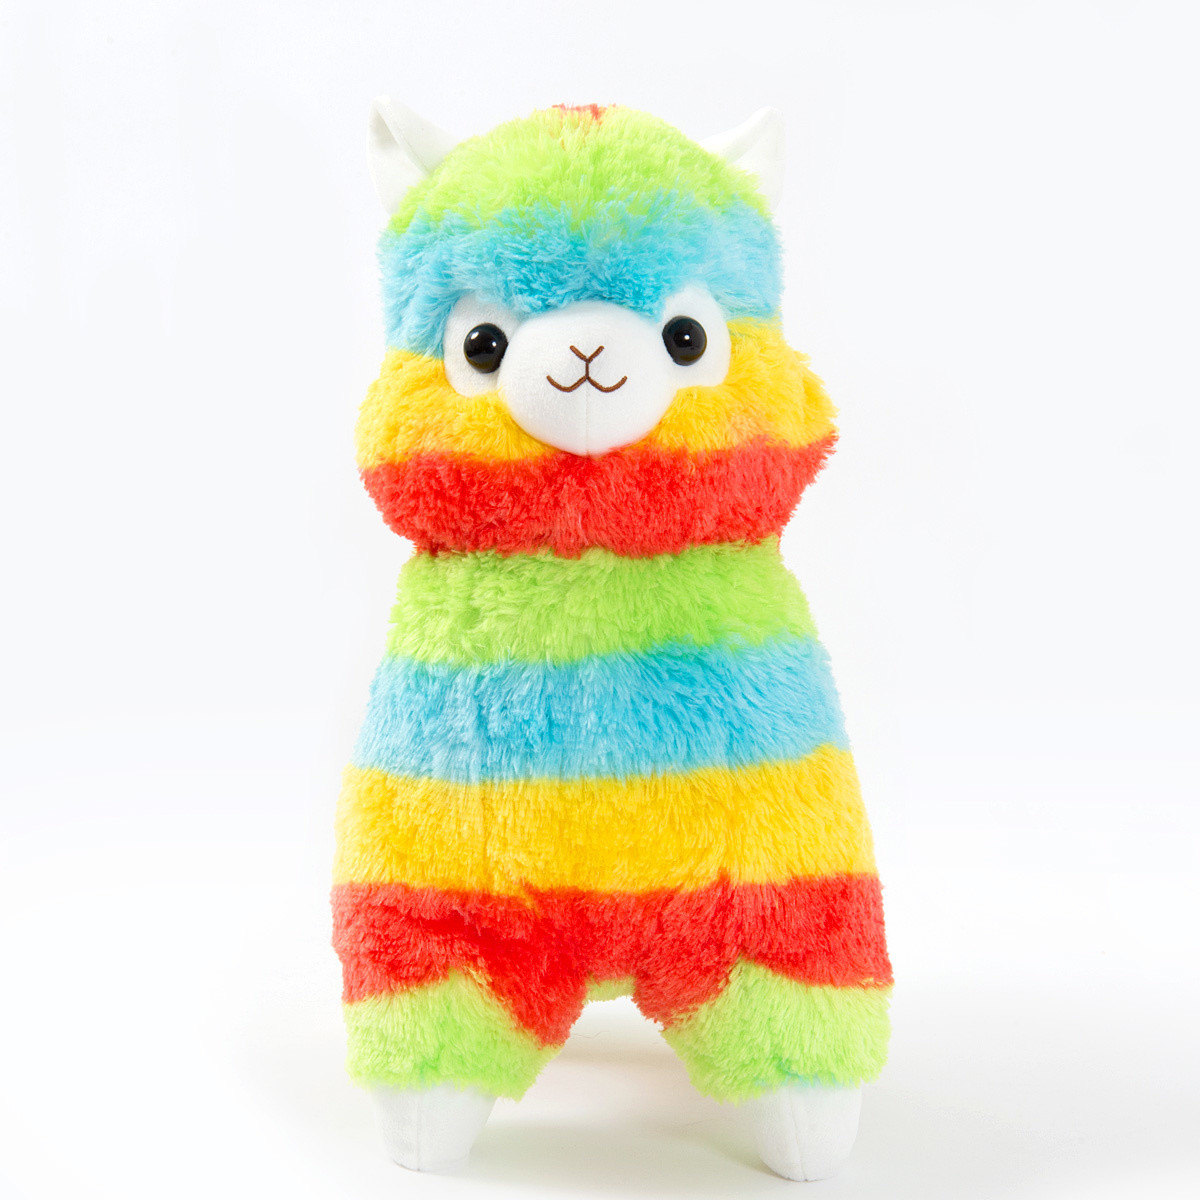 Best Stores For Home Decor Tom Exclusive Tompacasso Alpaca Plush Big Tokyo